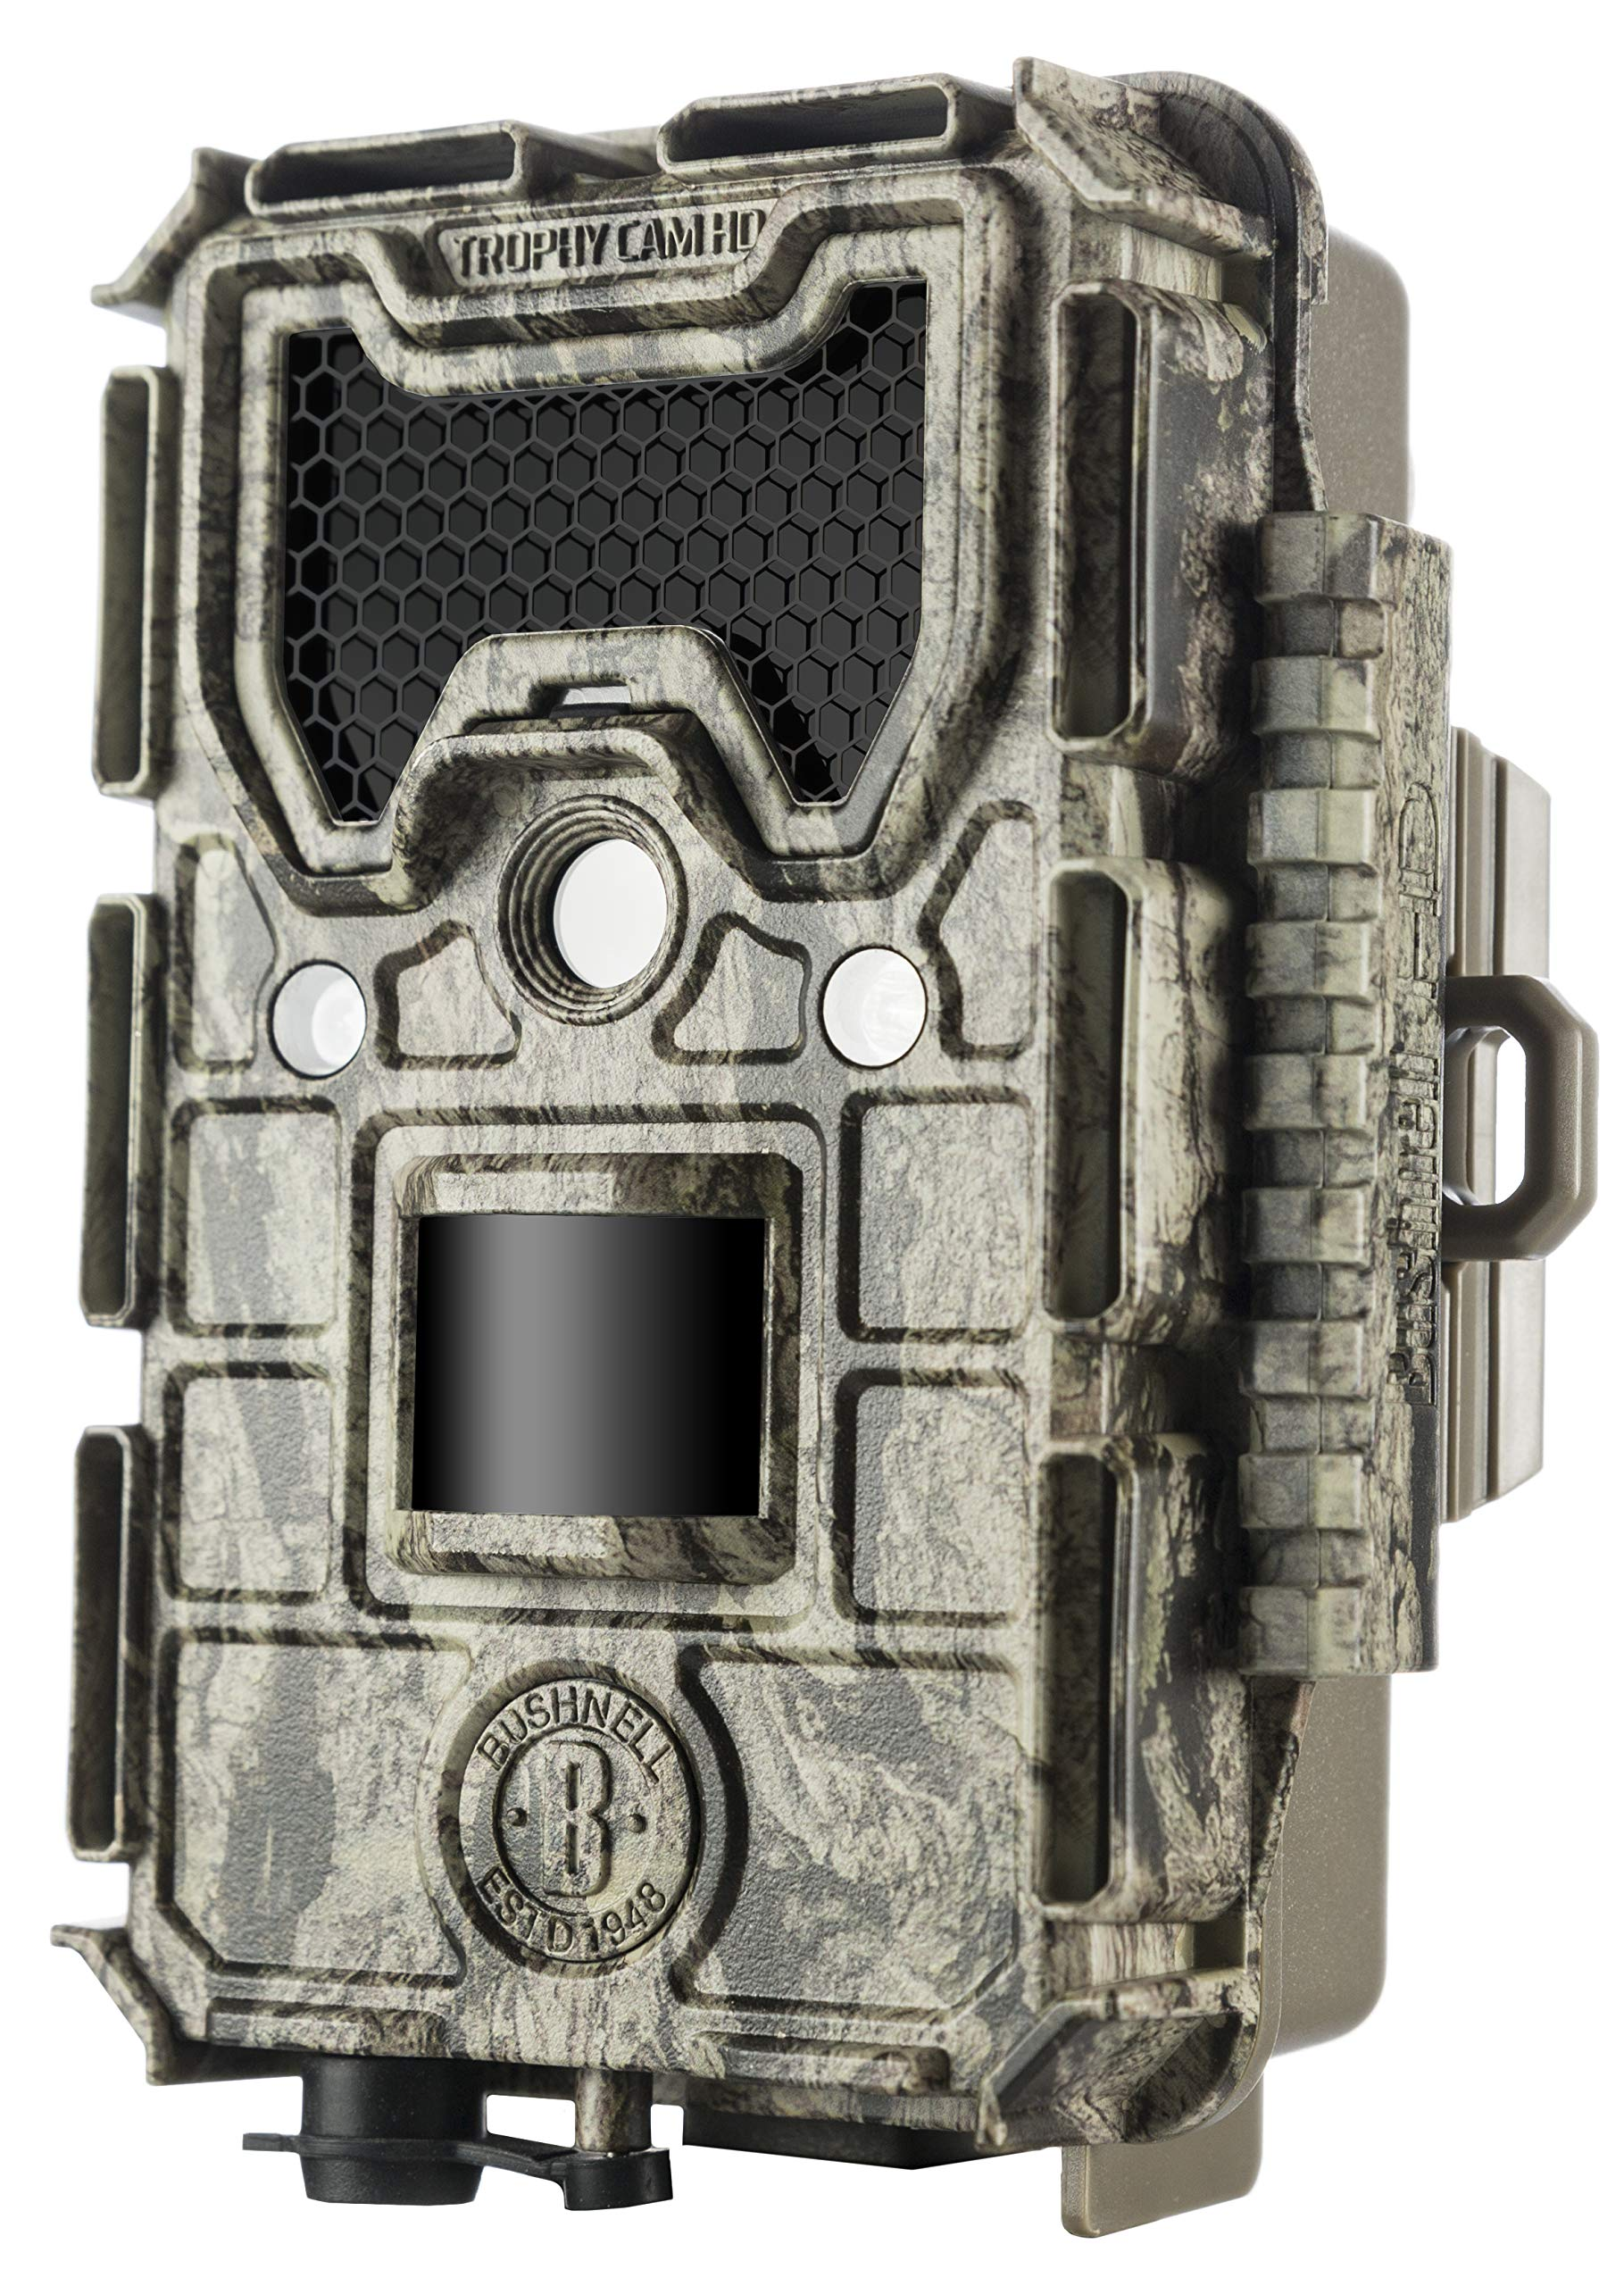 Bushnell 119877 24MP Trophy Cam HD No Glow Trail Camera with Color Viewer, Camo Camouflage by Bushnell (Image #3)